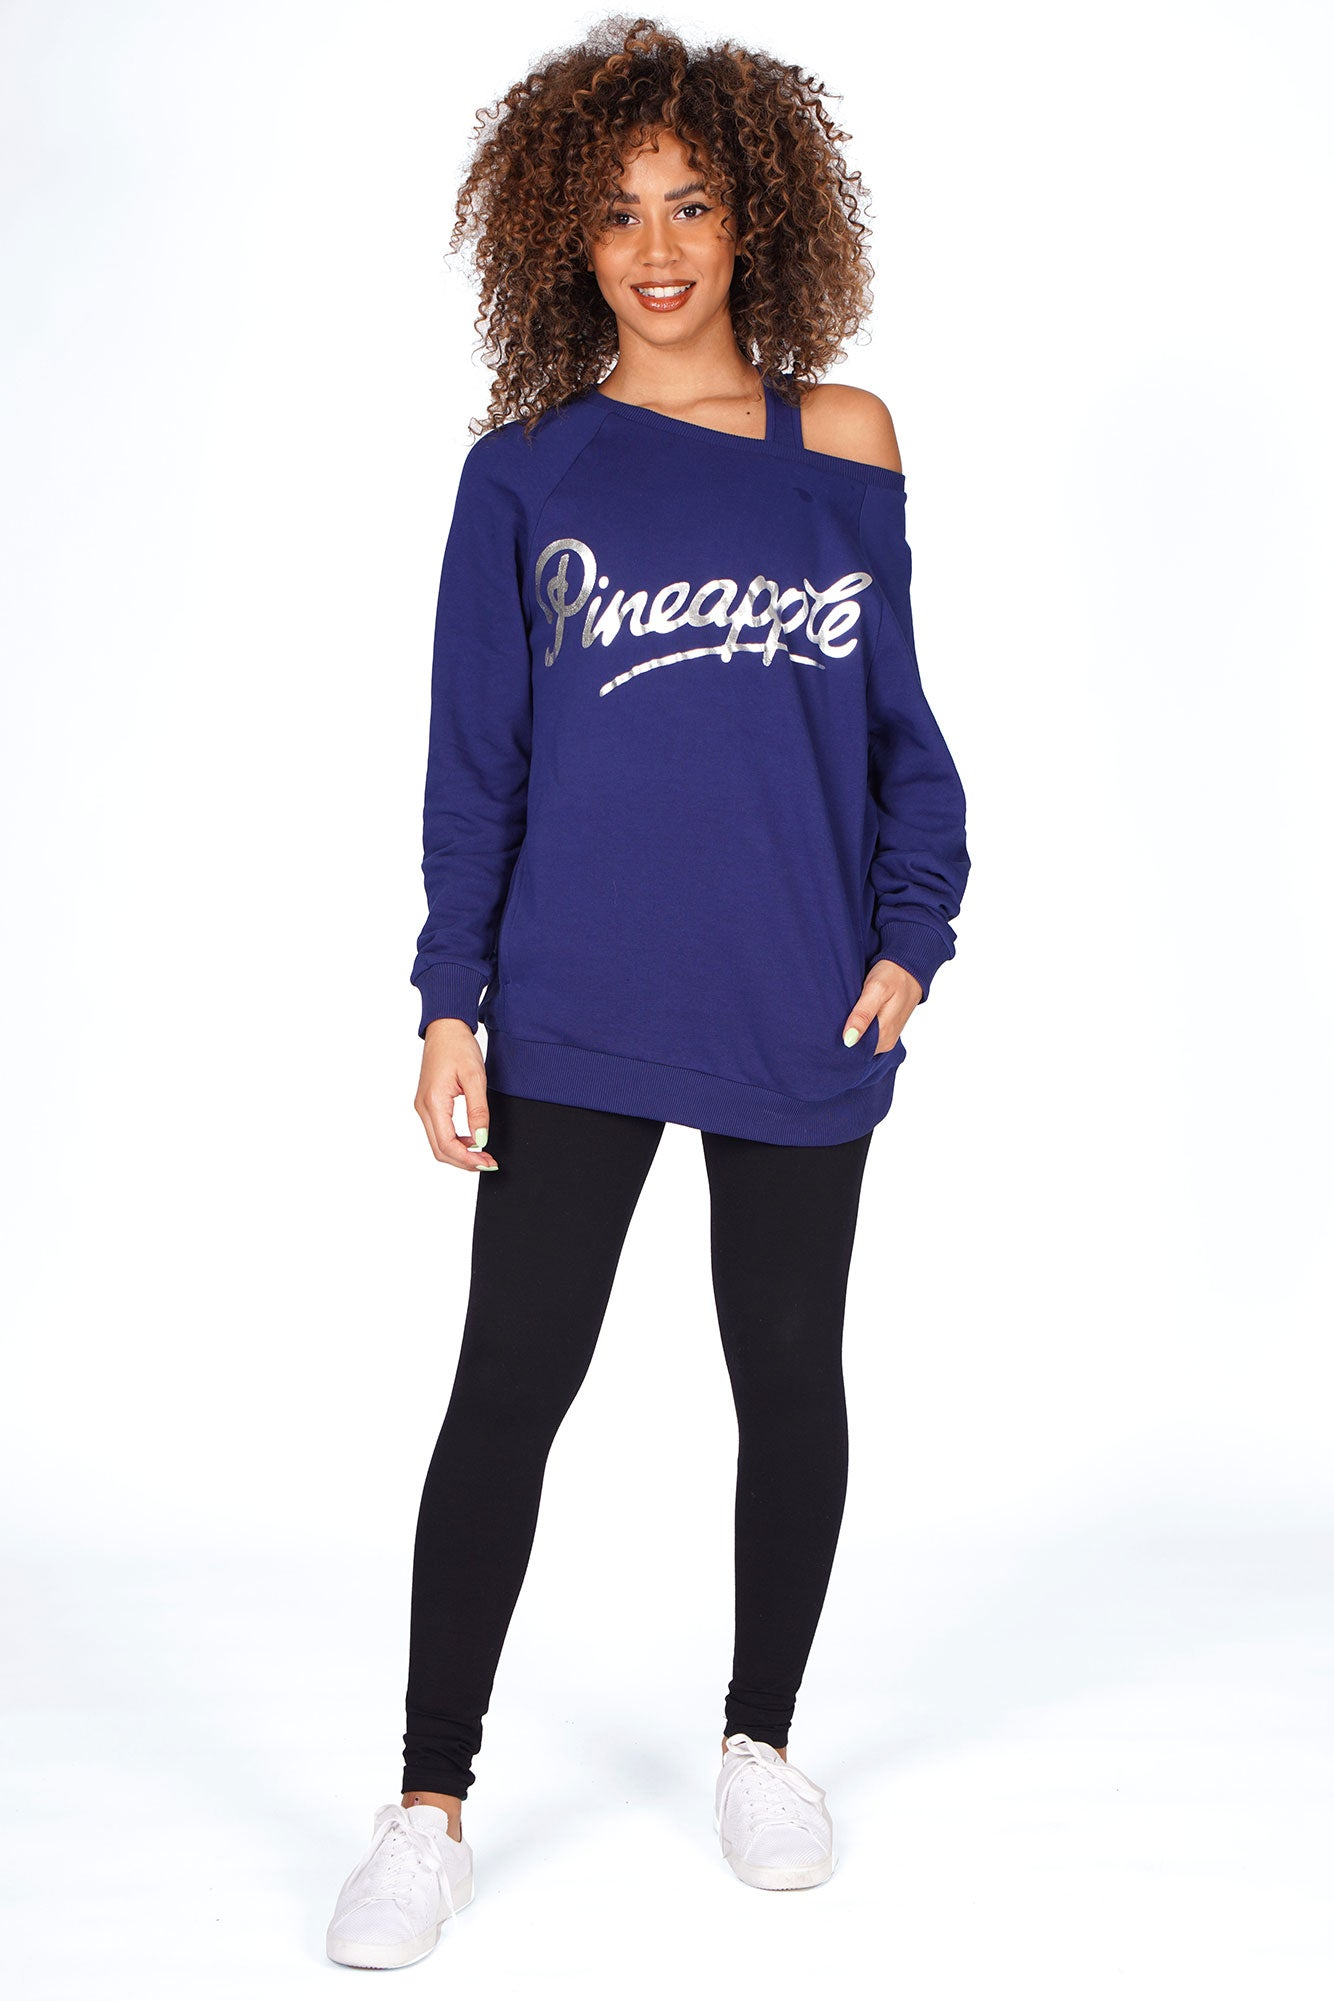 Woman waring Navy Blue Pineapple Monster Sweater with Black Leggings